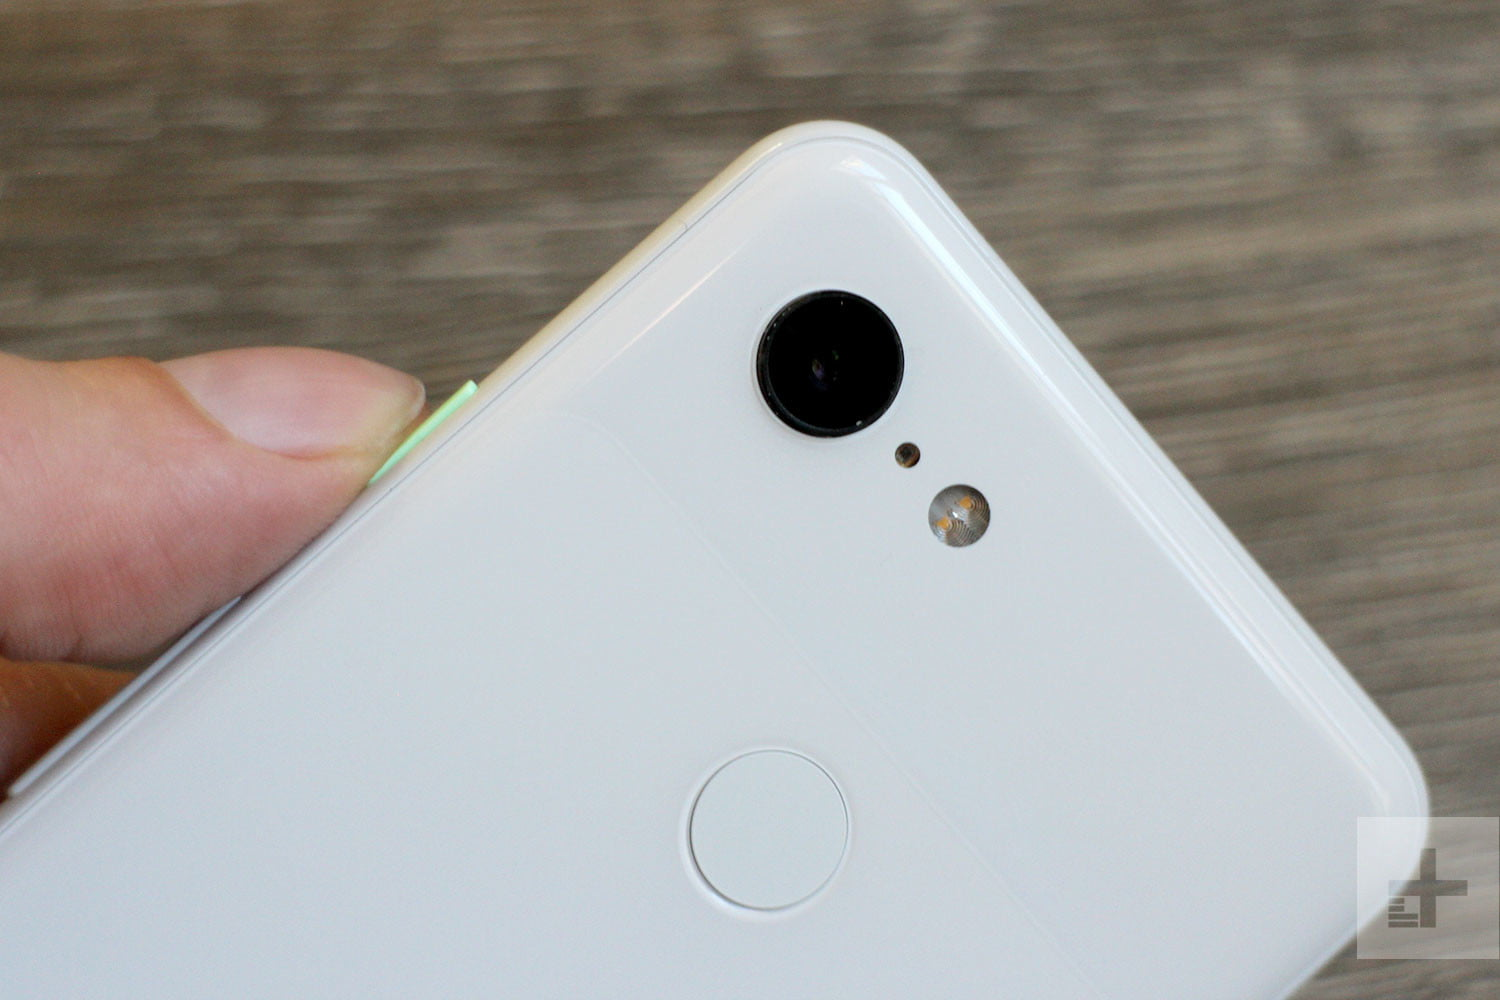 The Best Google Pixel 3 or Pixel 3a Tips and Tricks